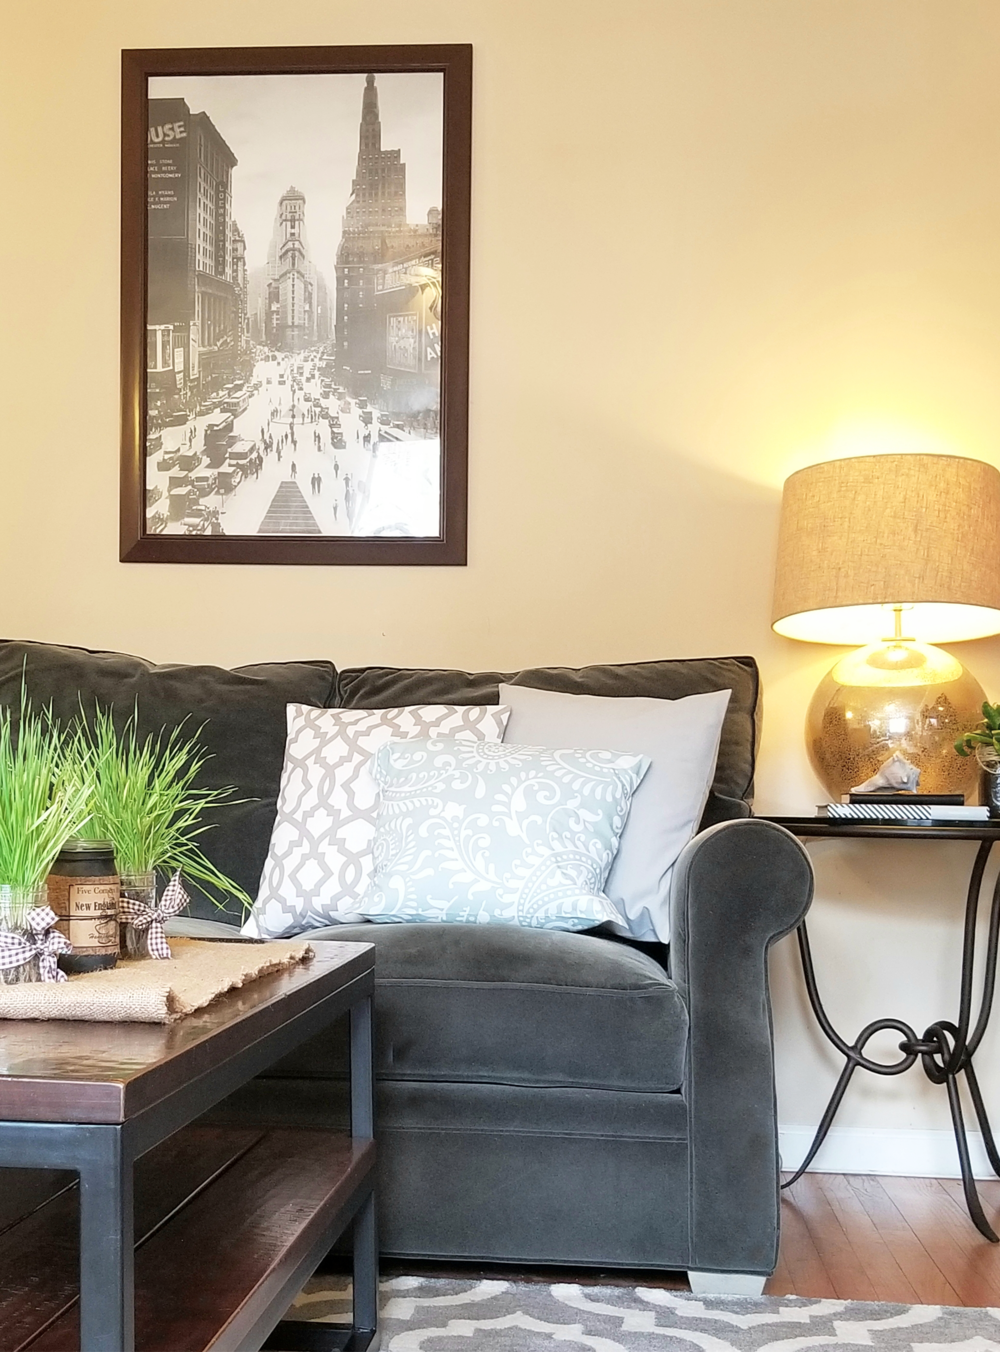 New House Decorating Ideas! 5 Easy Steps To Decorate Your New Home. Make  Moving